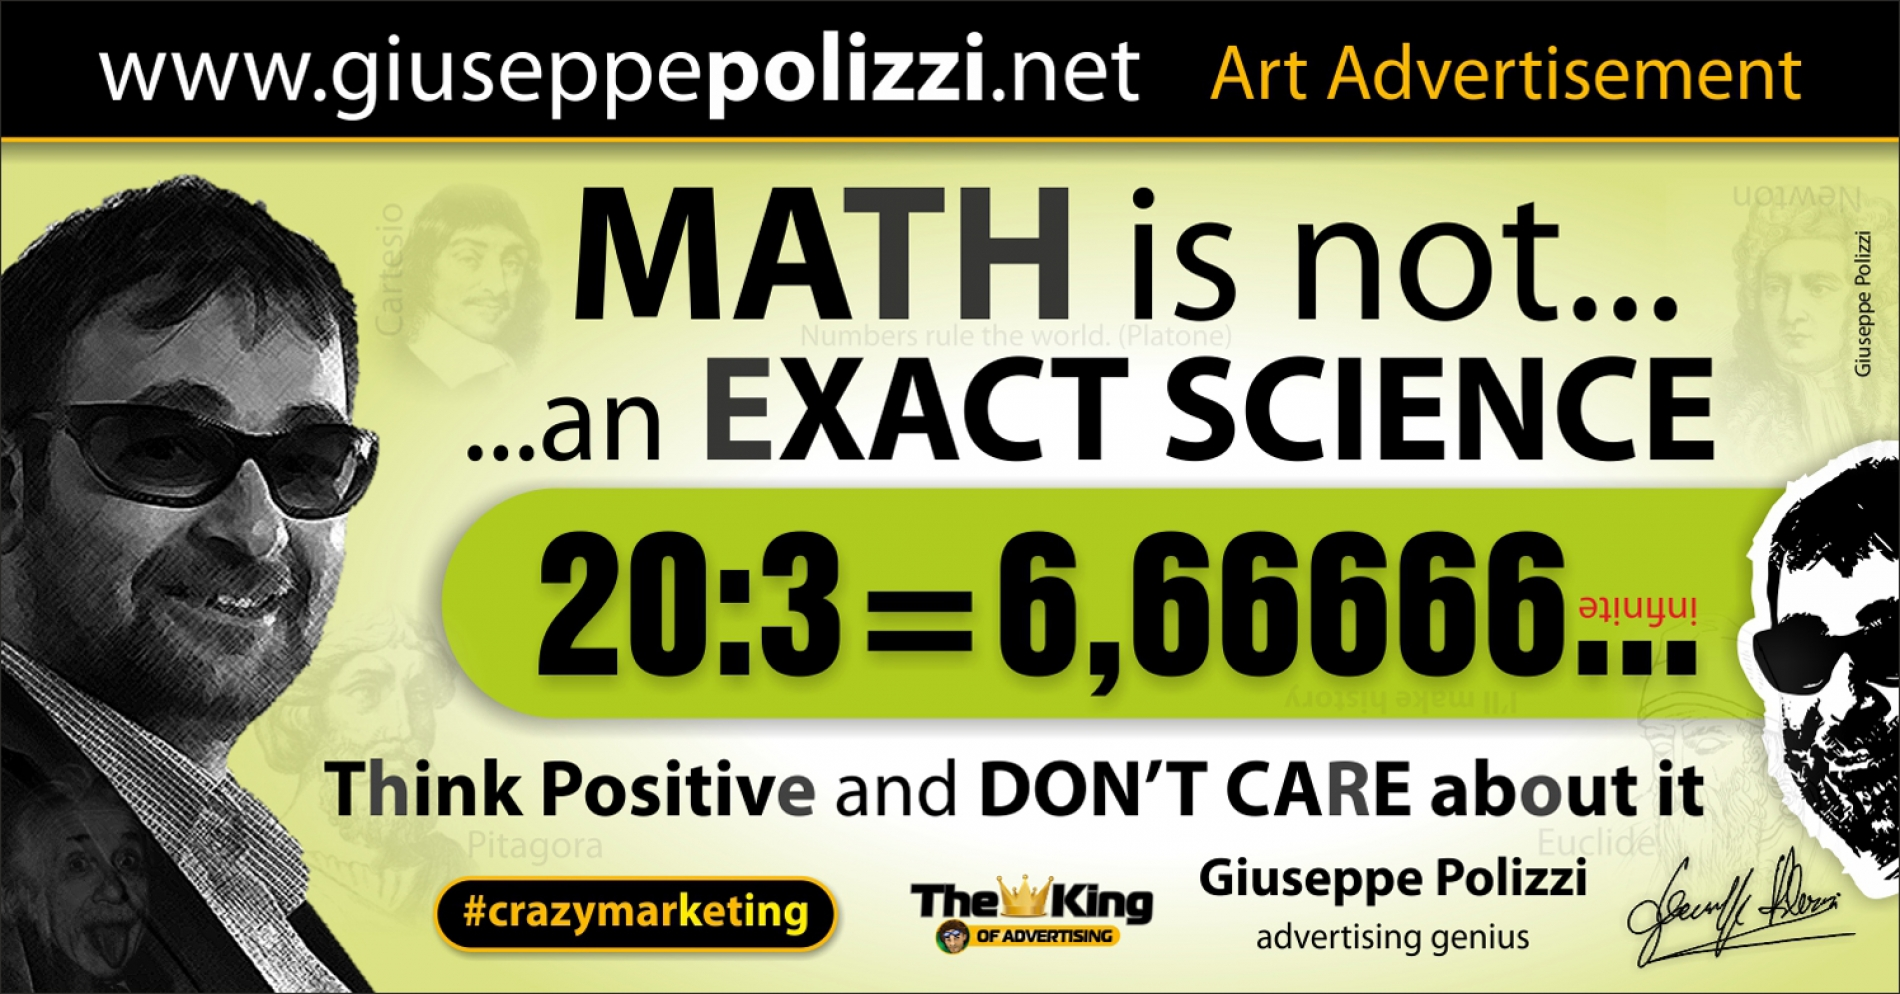 giuseppe polizzi aphorisms  MATH 2016 crazy marketing inglese